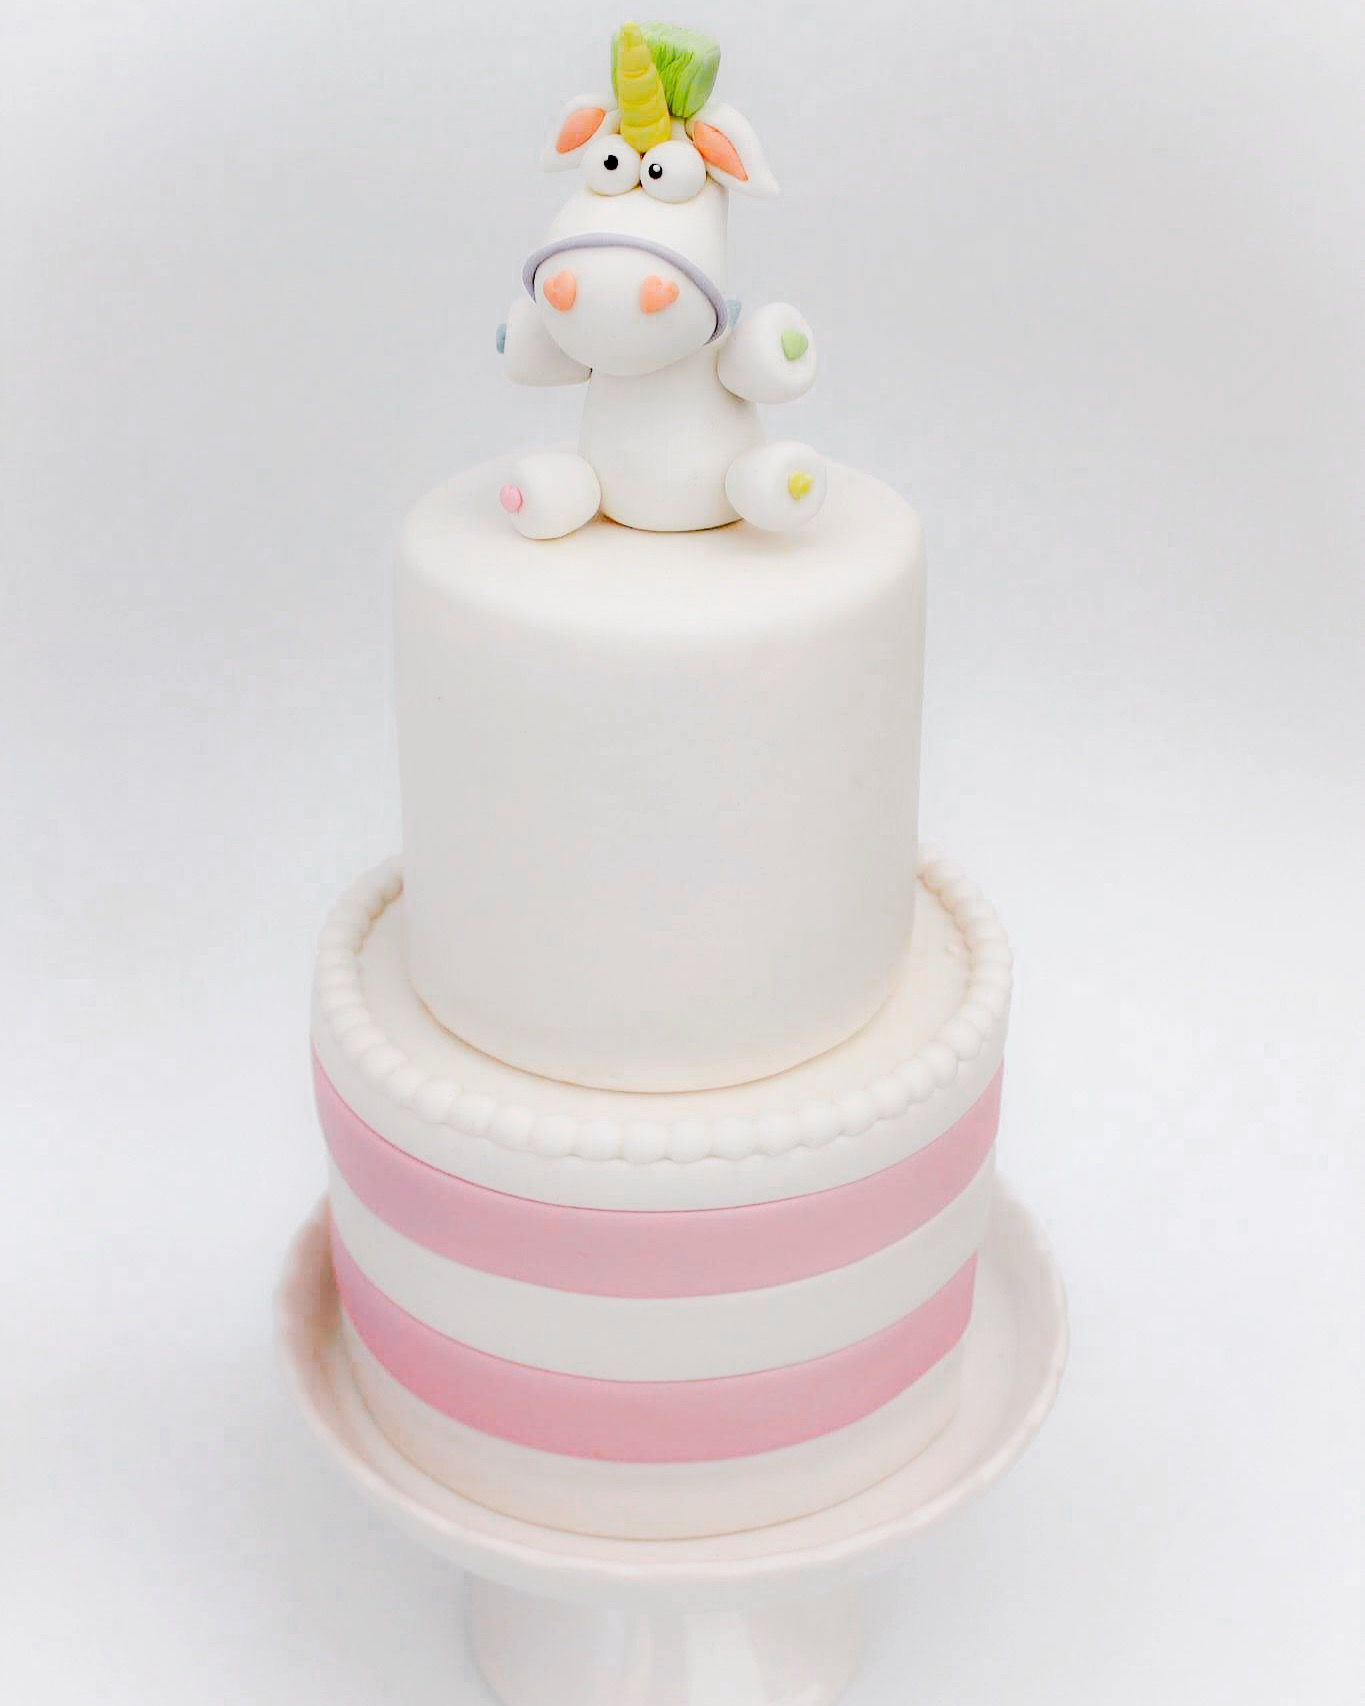 White and pink baby cake with unicorn topper